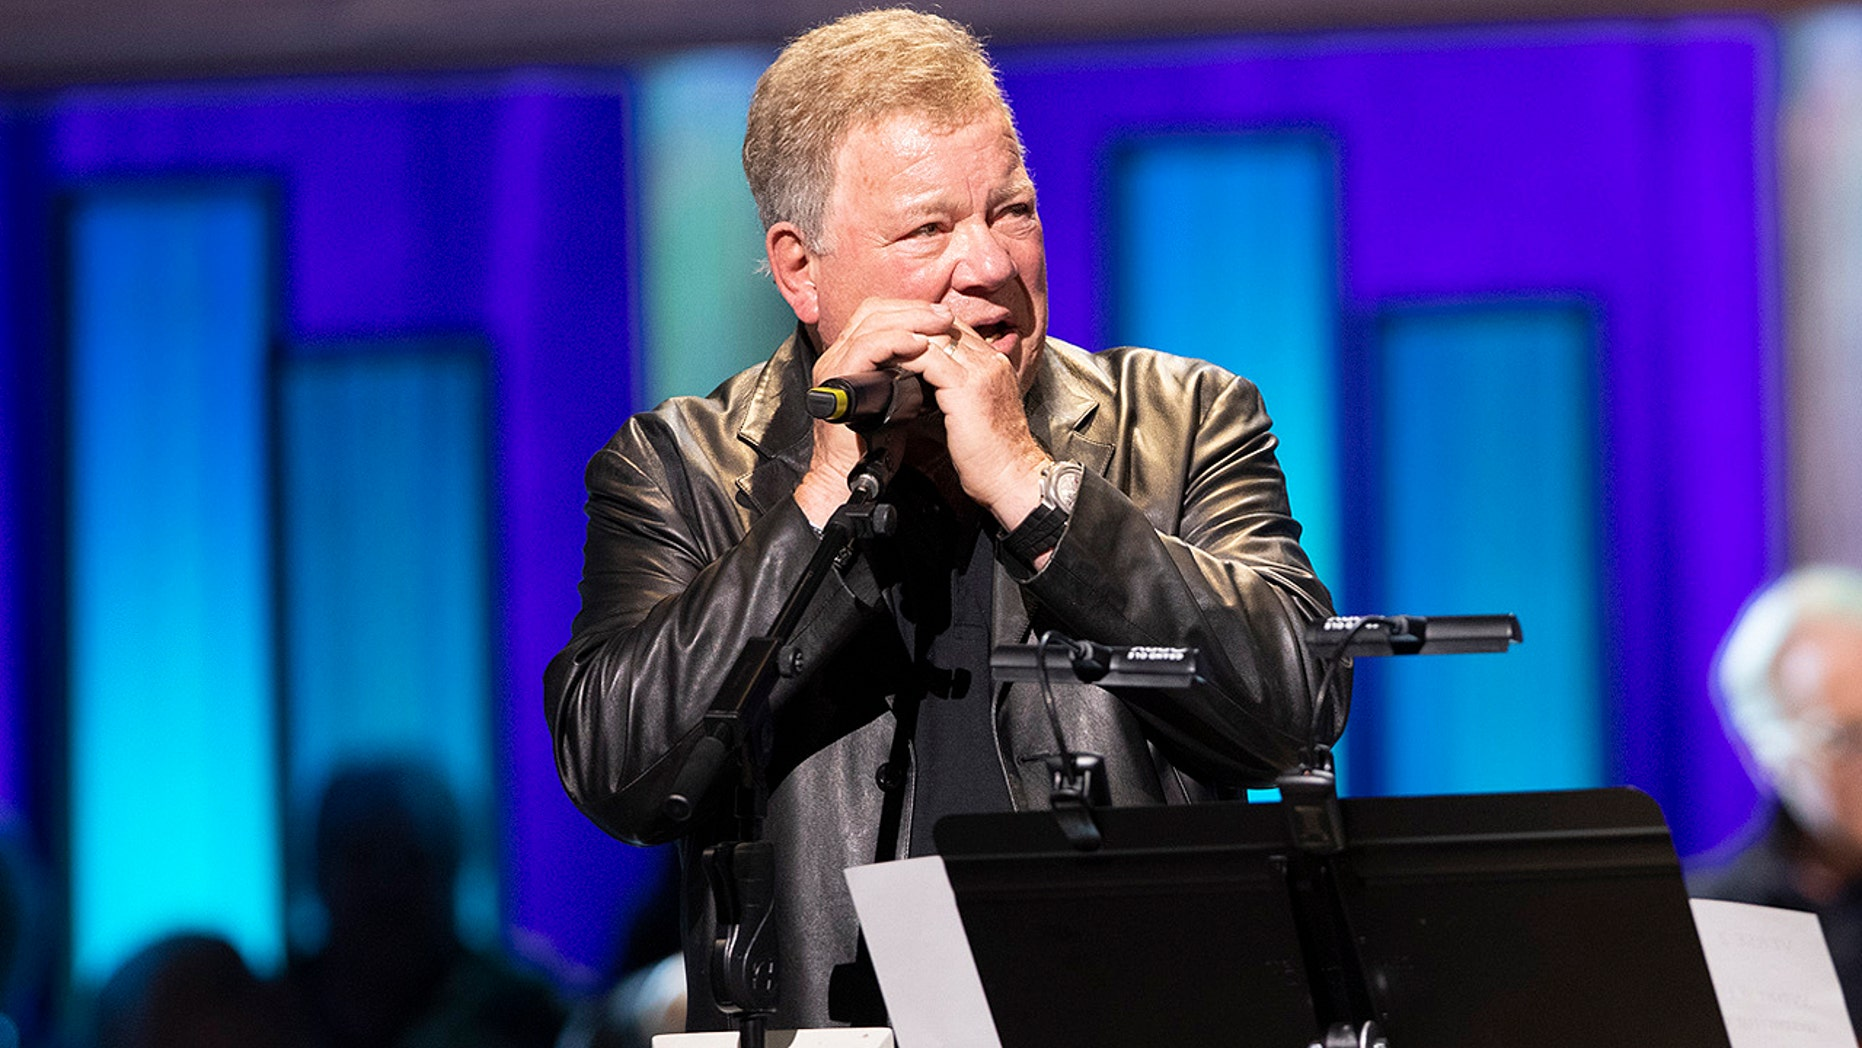 William Shatner at the Grand Ole Opry